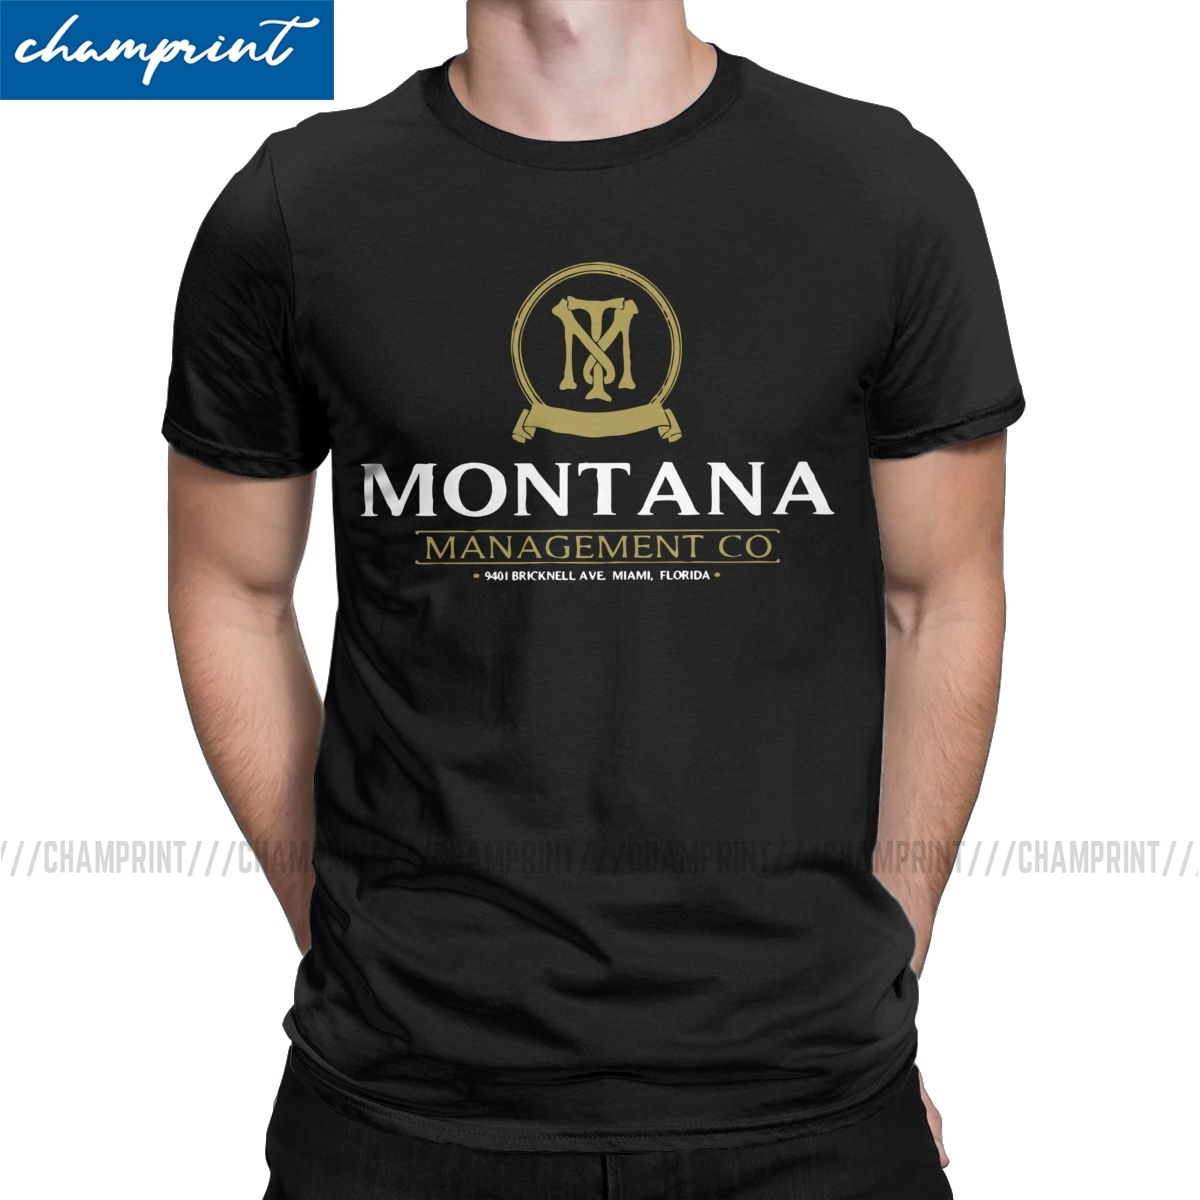 Men's T-Shirt Montana Management Company Vintage Tee Shirt Scarface Pacino Gangster Movie T Shirt Round Neck Tops Plus Size